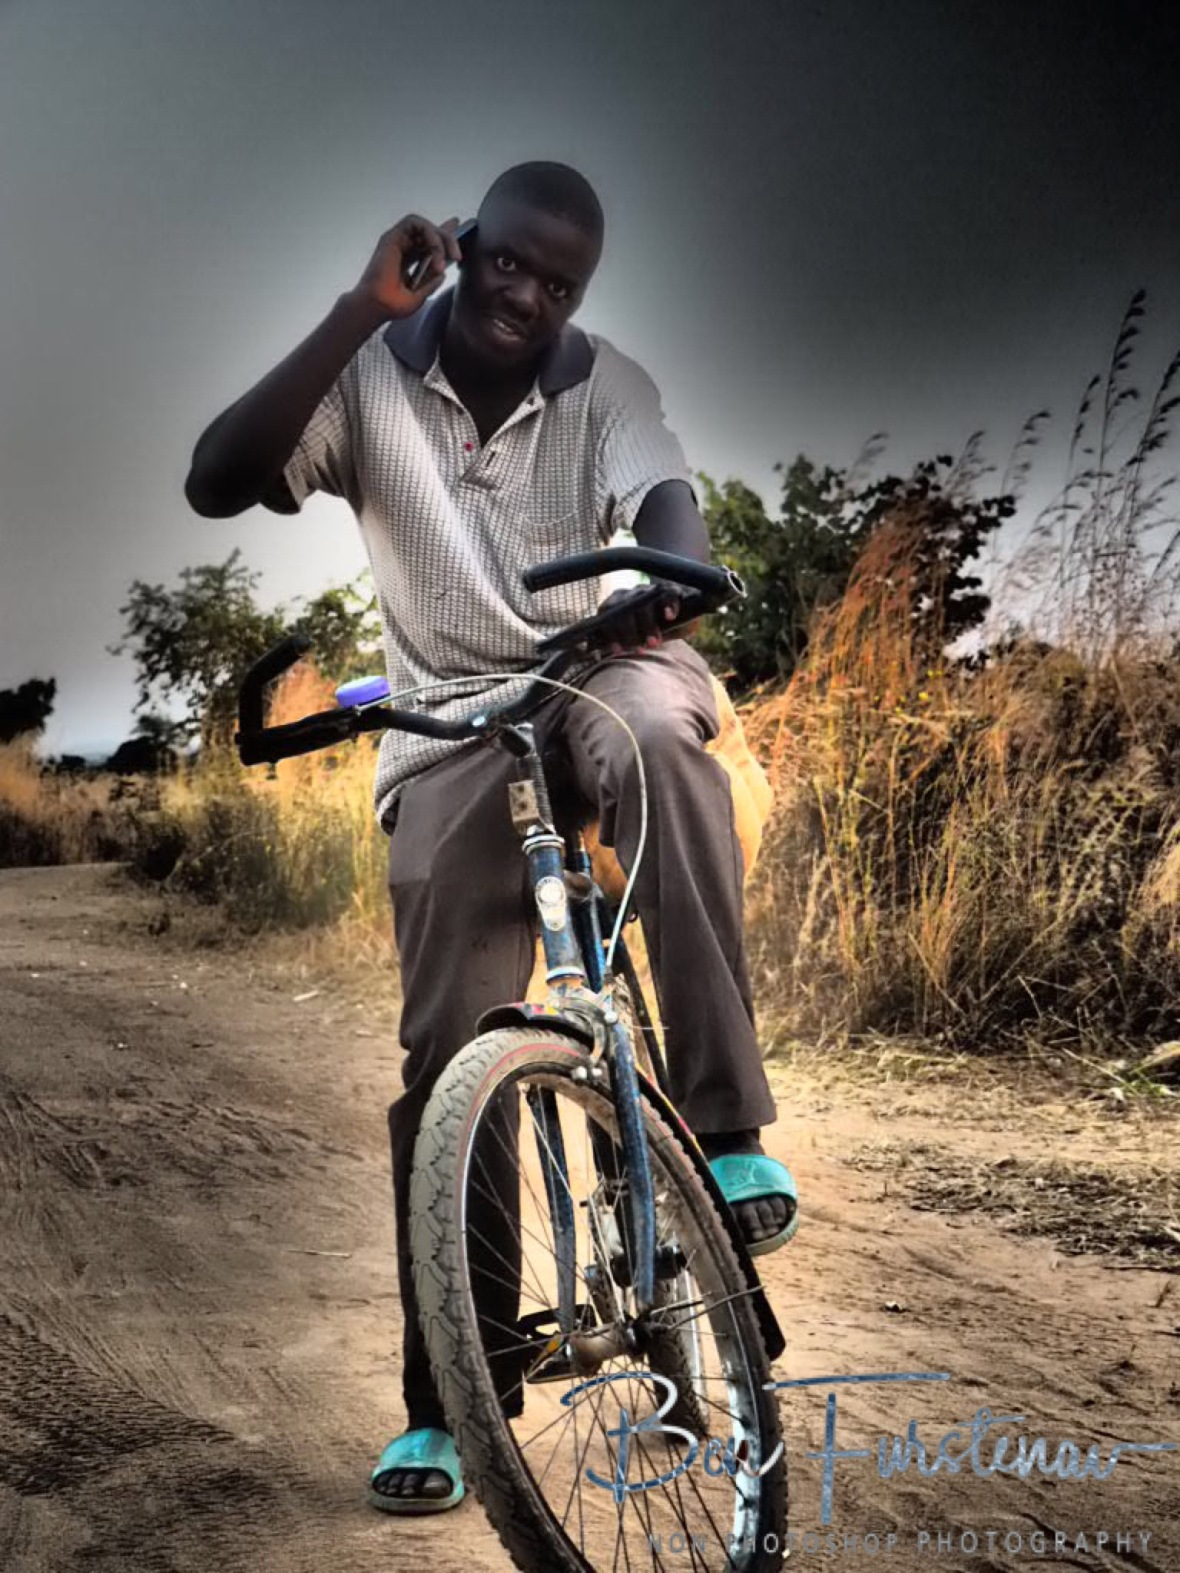 Looking cool on the bike, Northern Region, Malawi